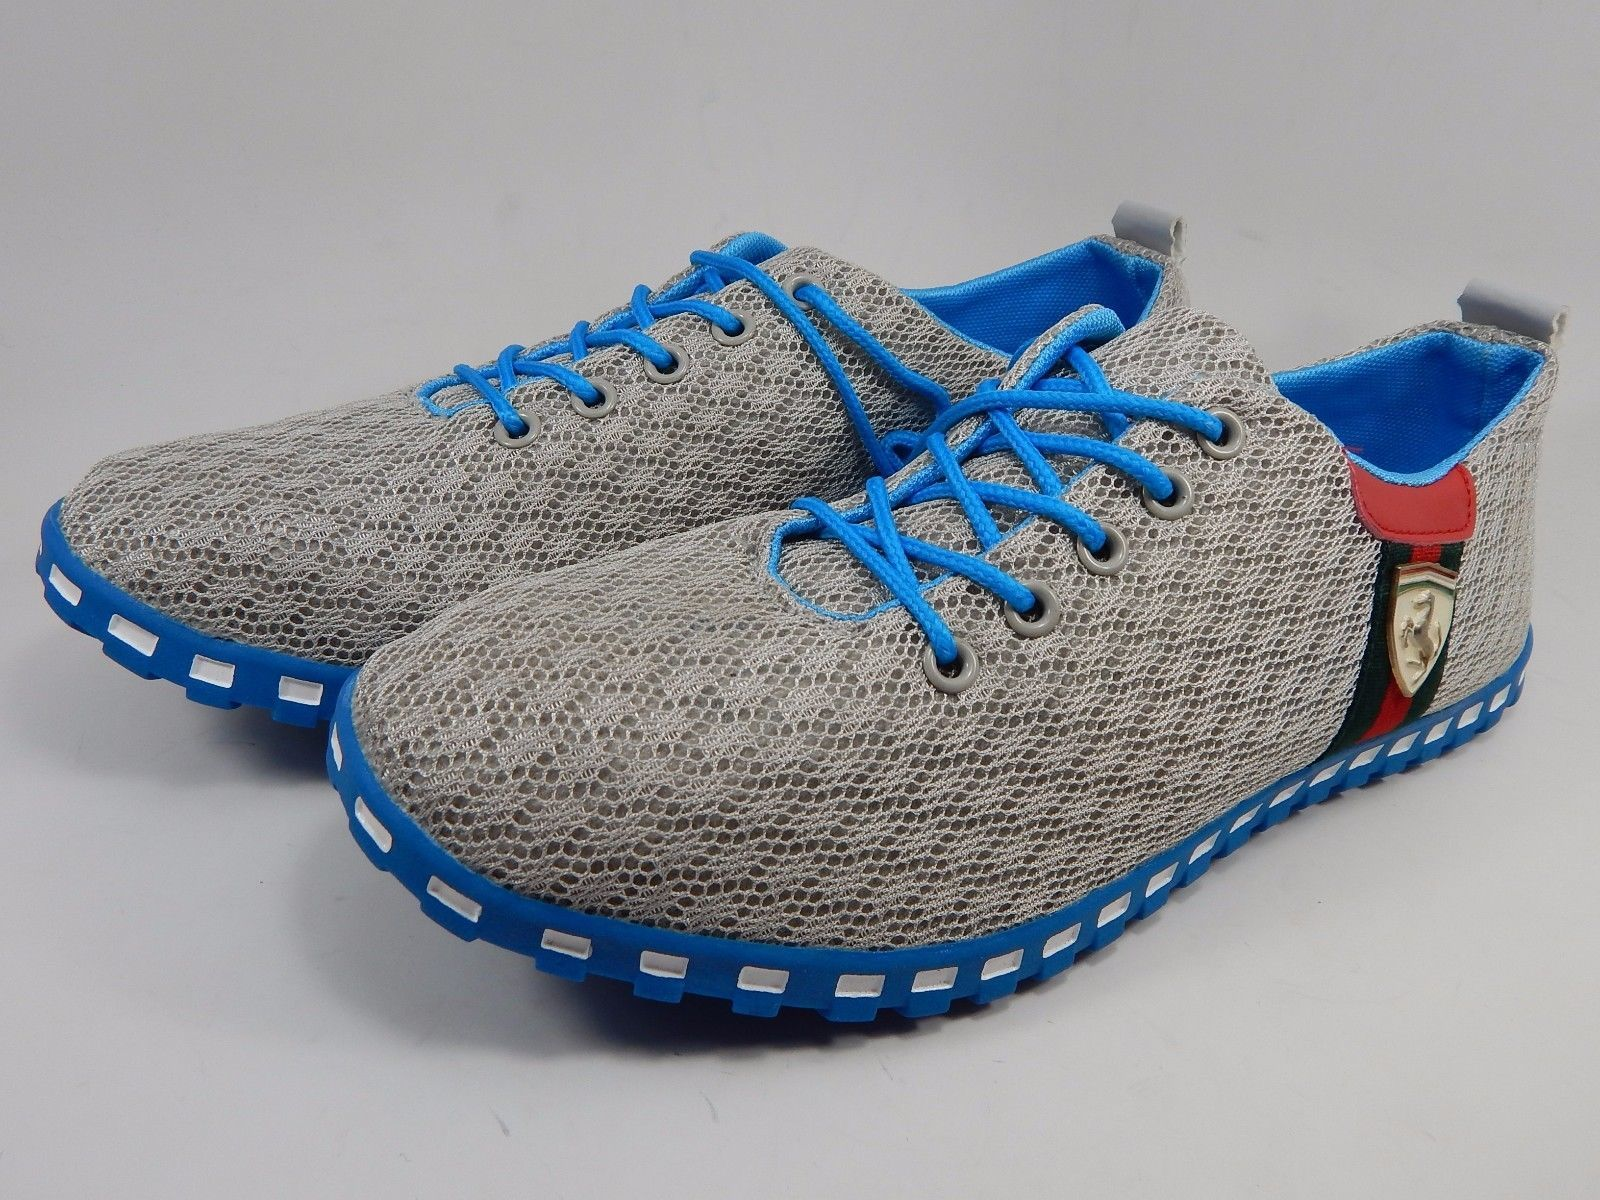 Sport Essential Brand Gray/Blue Men's Athletic Sneakers Size US 10 M (D) EU 44